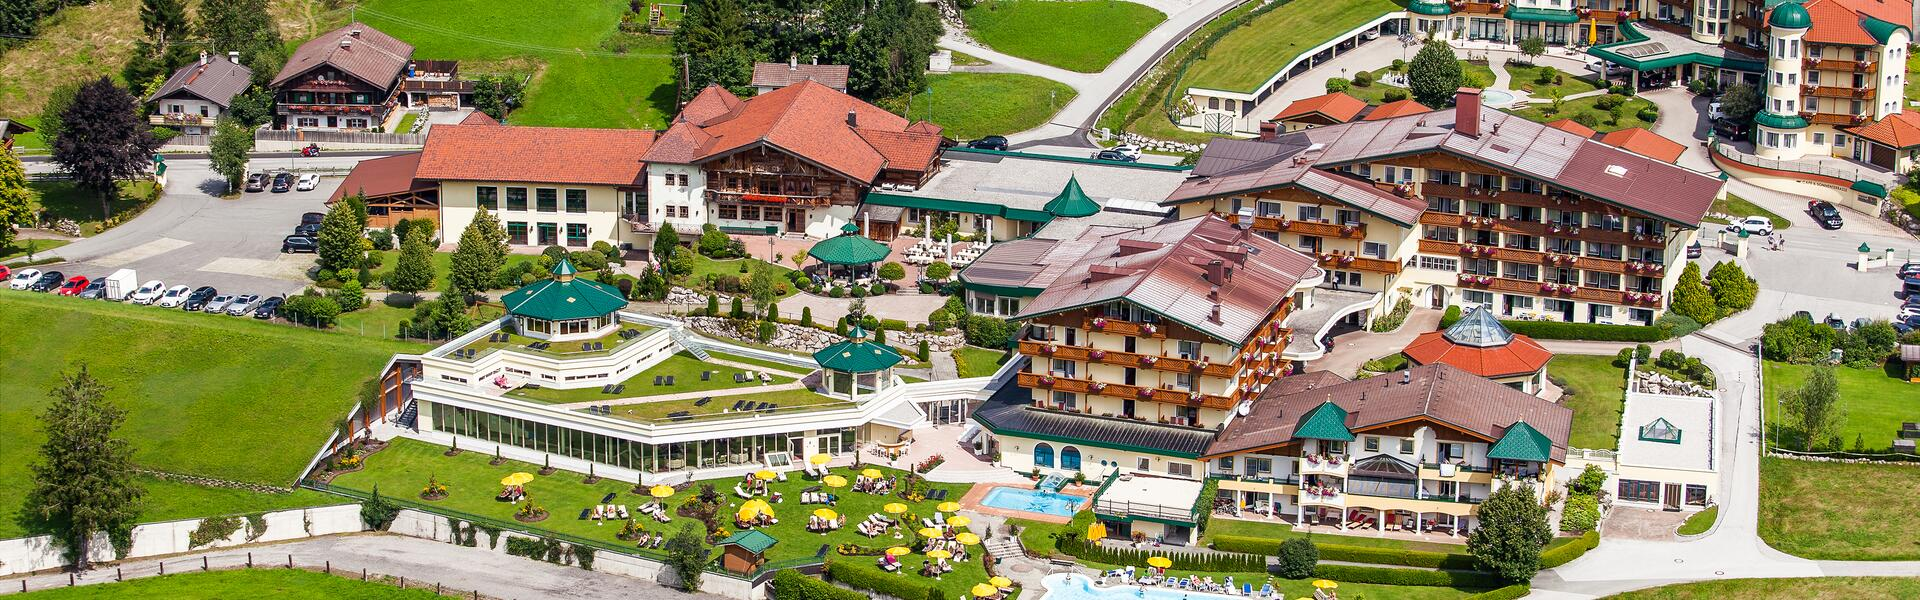 panoramic view hotel seehof walchsee